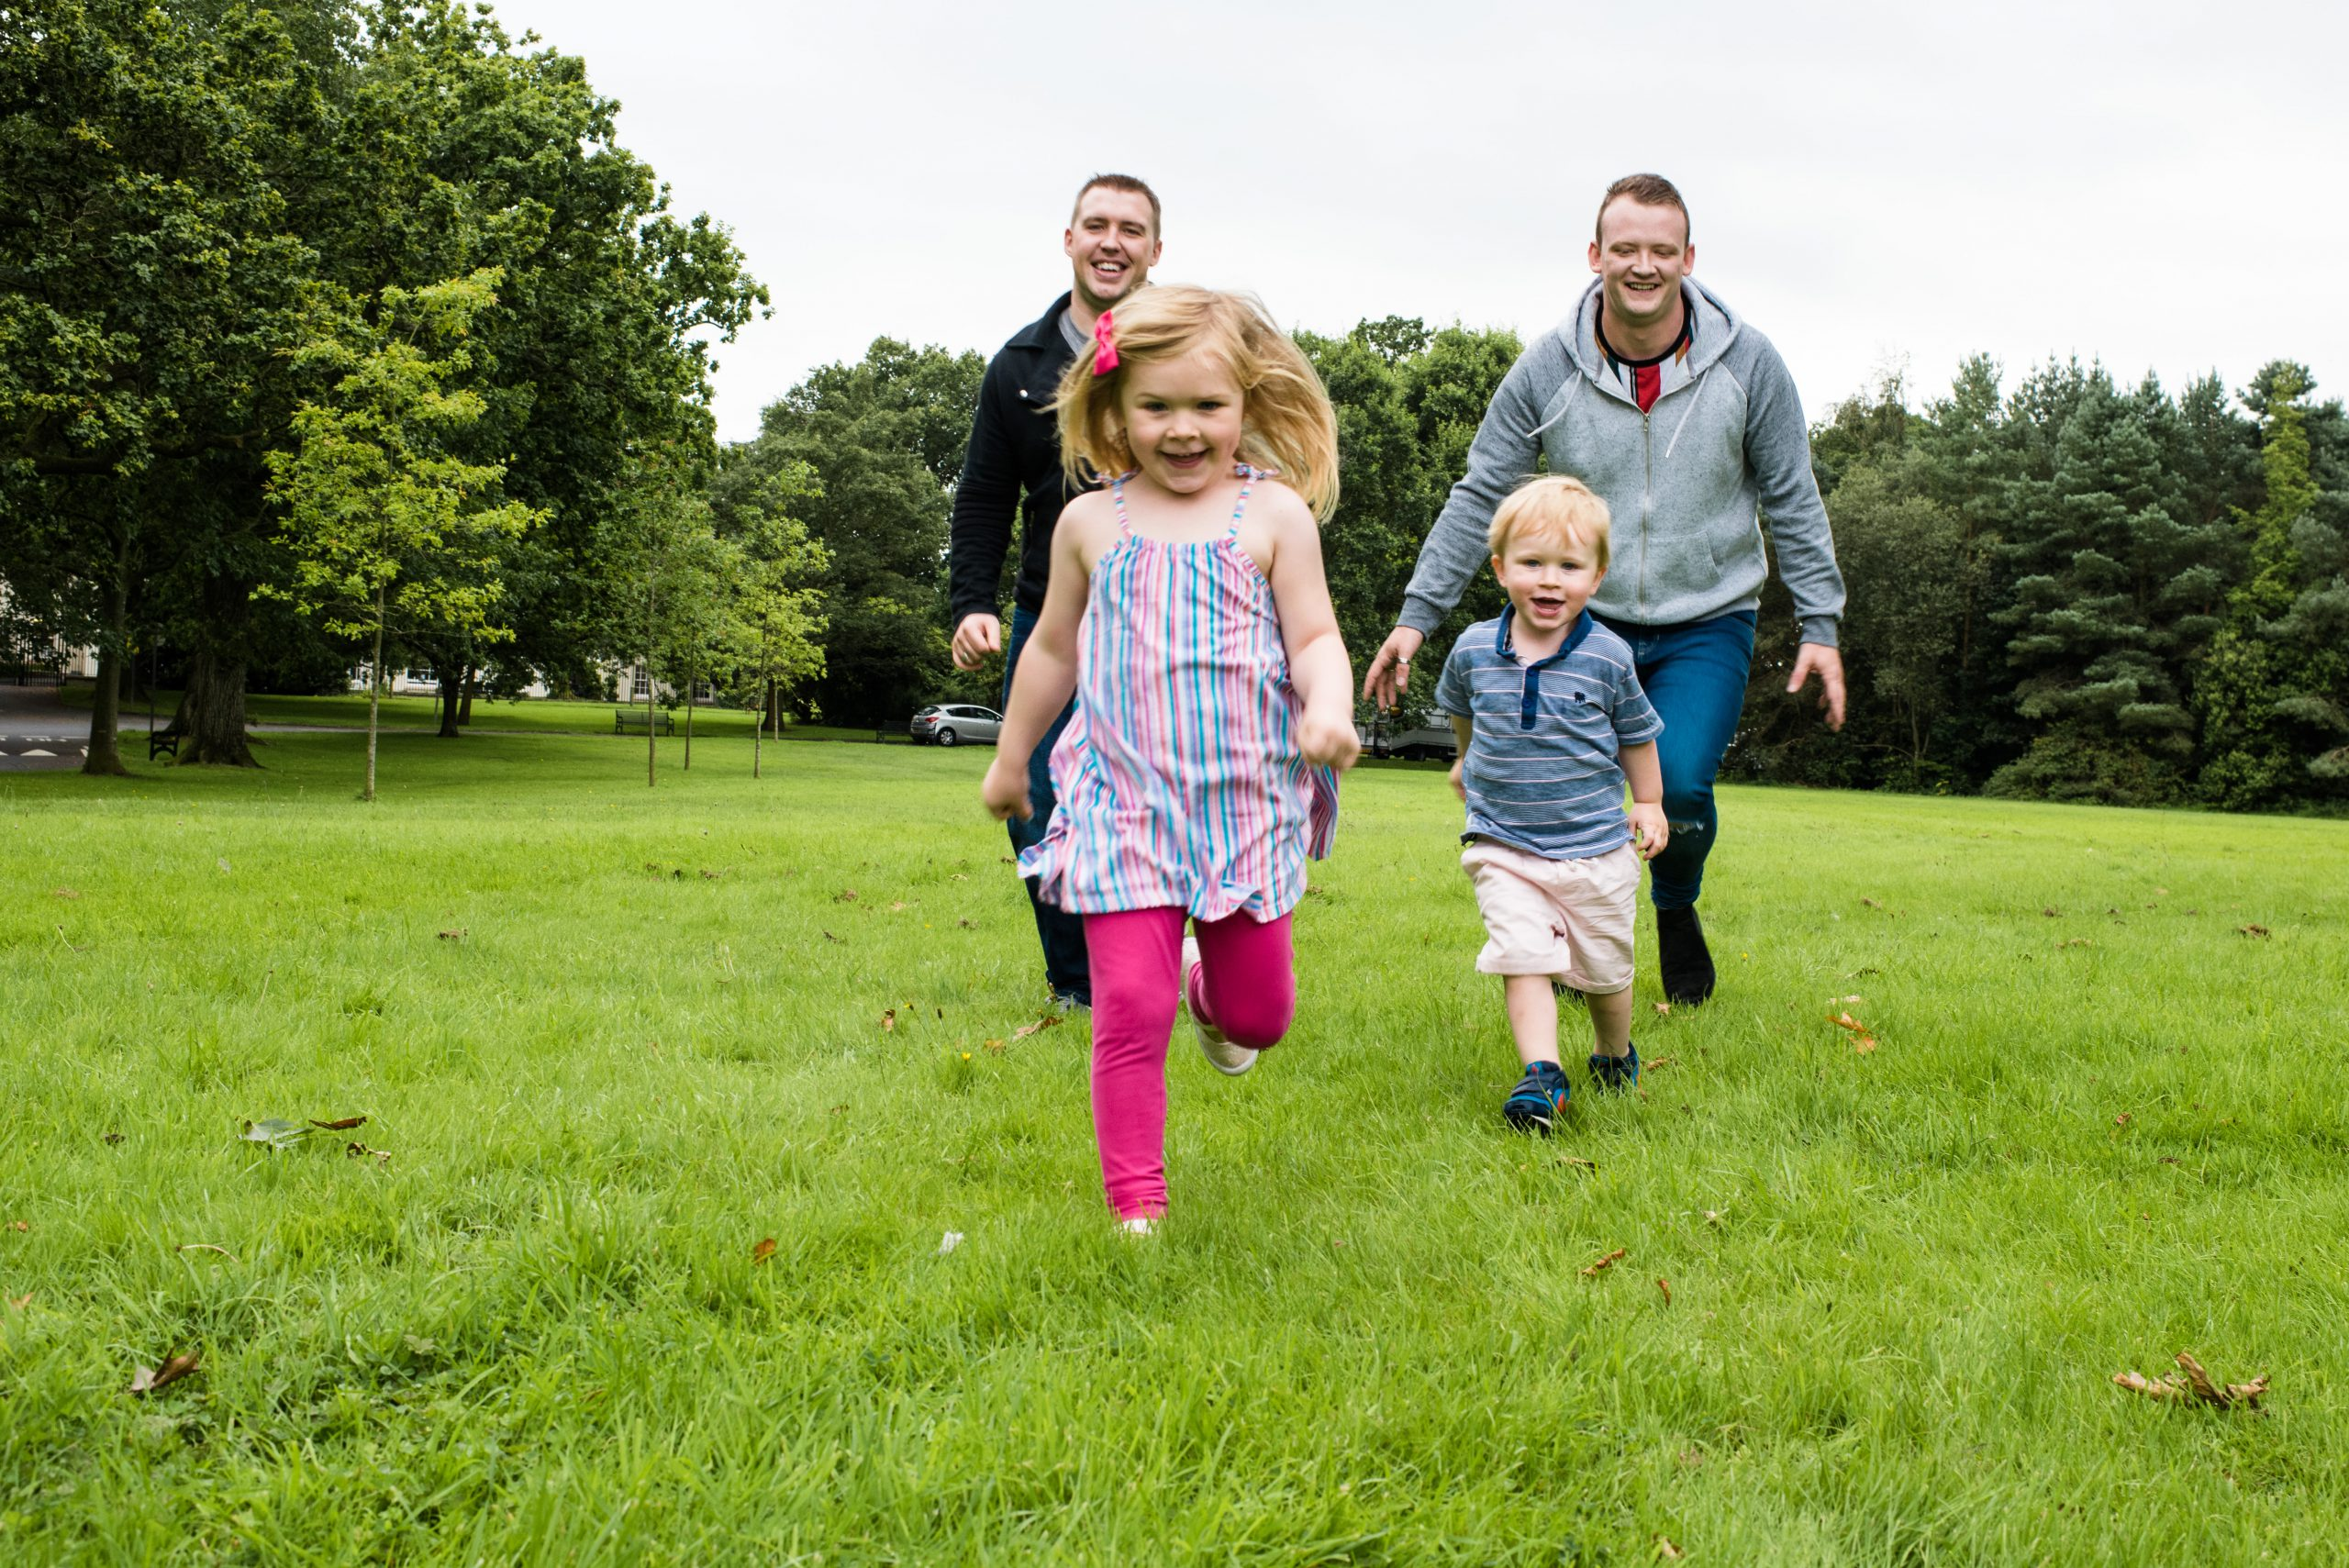 two adult male playing with two children in a park